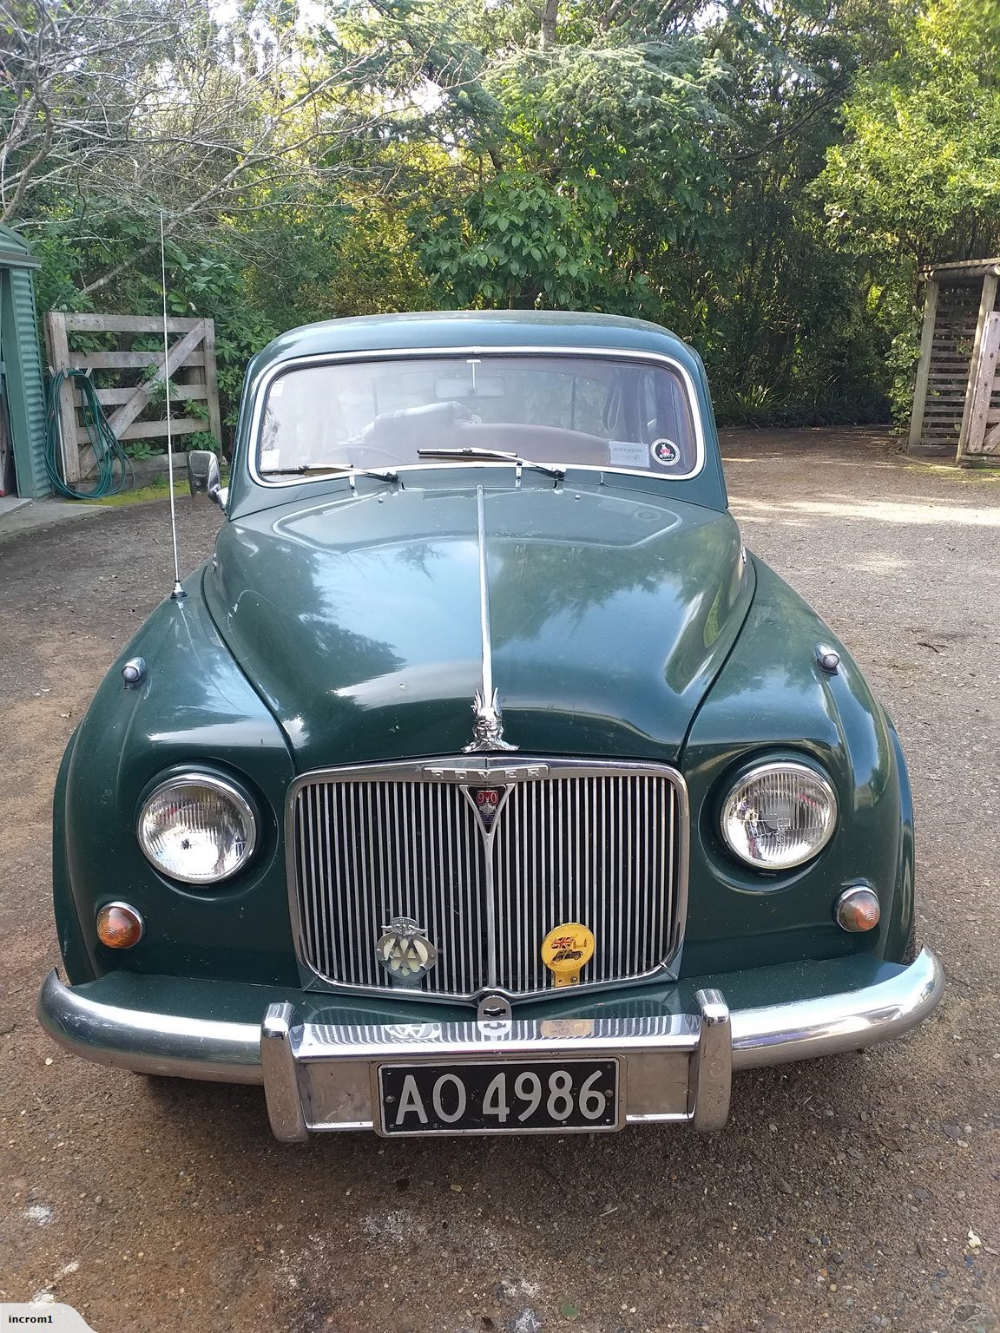 1956 Rover Other Rover 90 | Trade Me | British cars, Classic cars, Rover